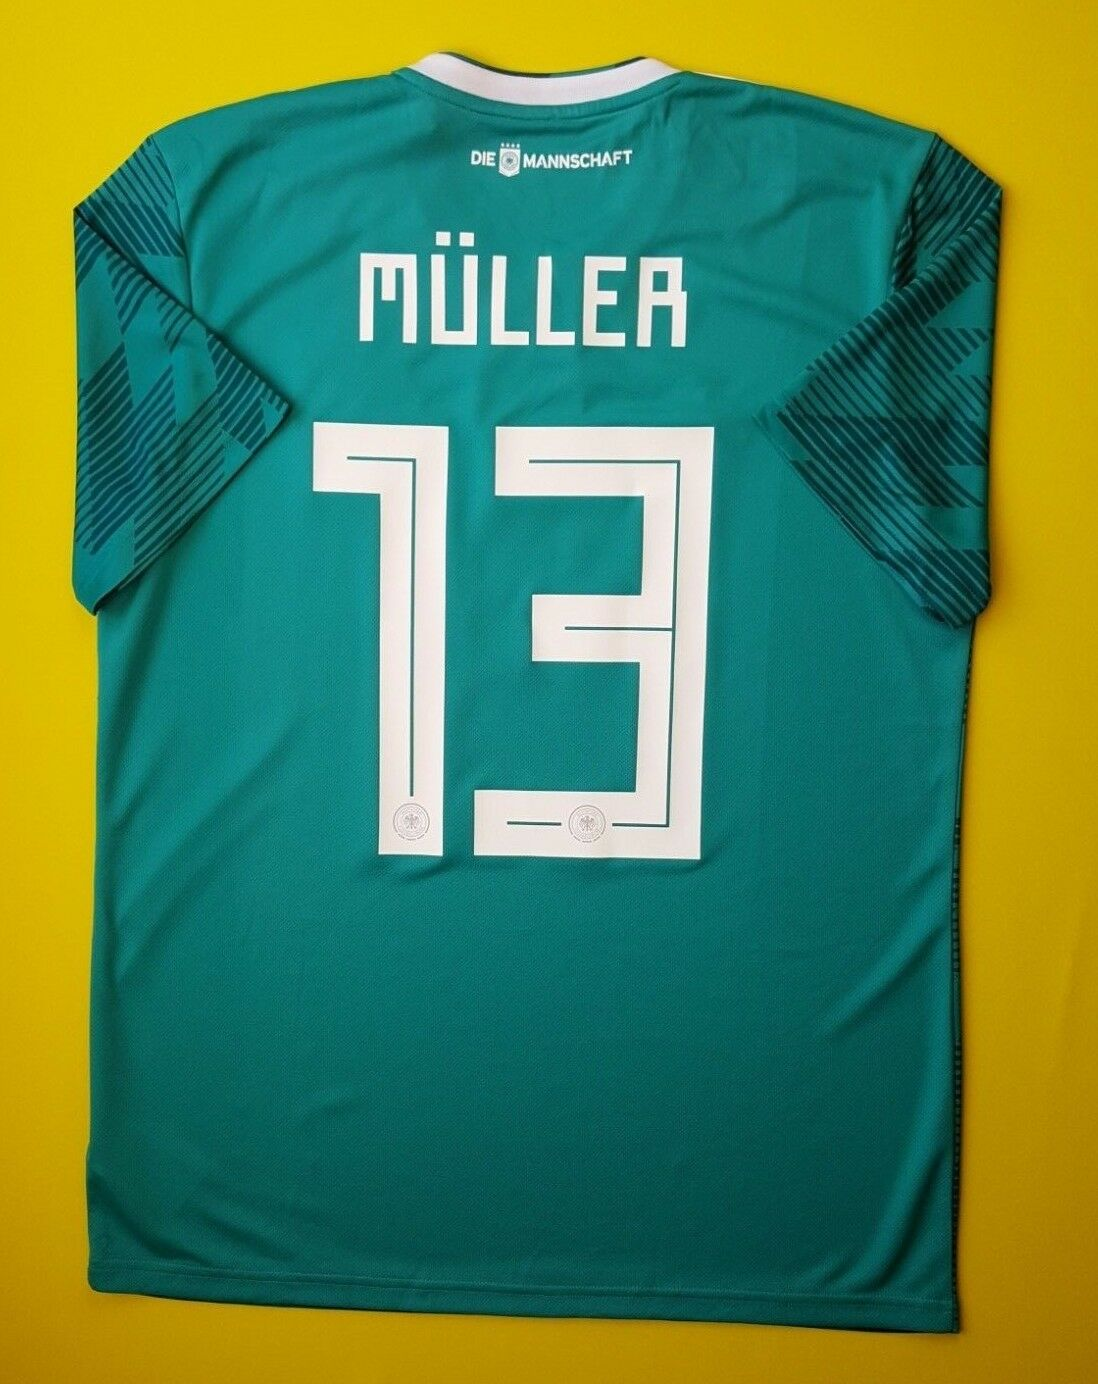 aaa87d337 5+ 5 Muller Germany jersey 2018 away shirt BR3144 soccer football Adidas